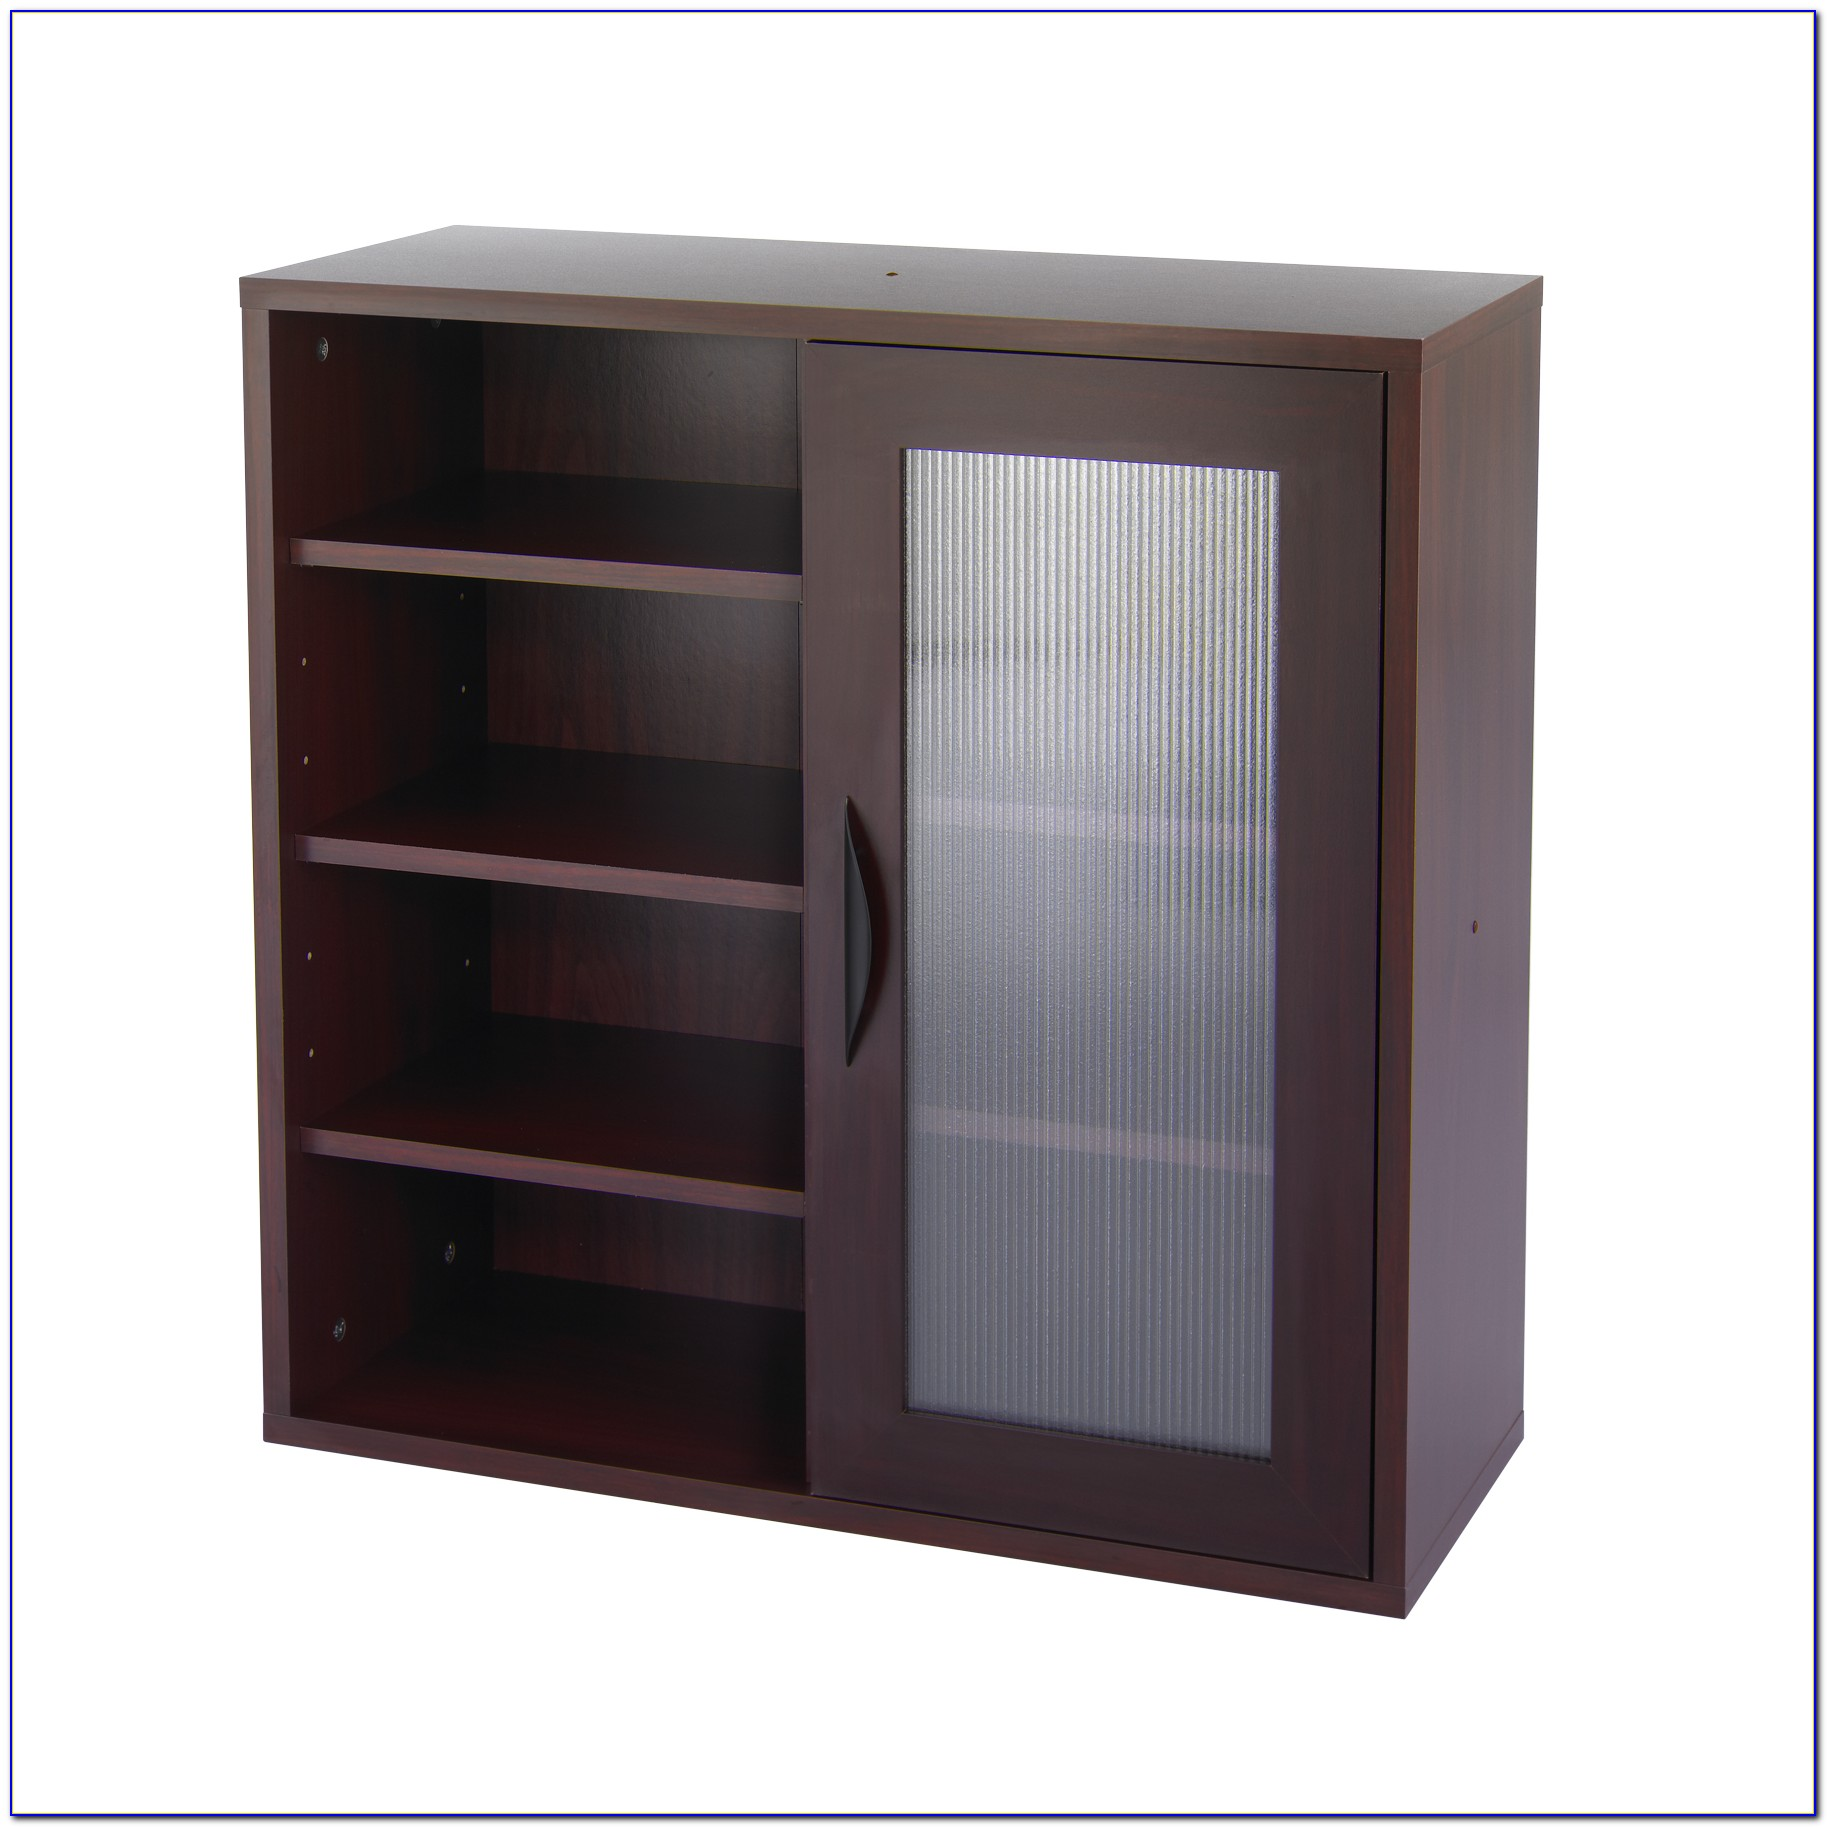 Storage Bookcase With Glass Doors